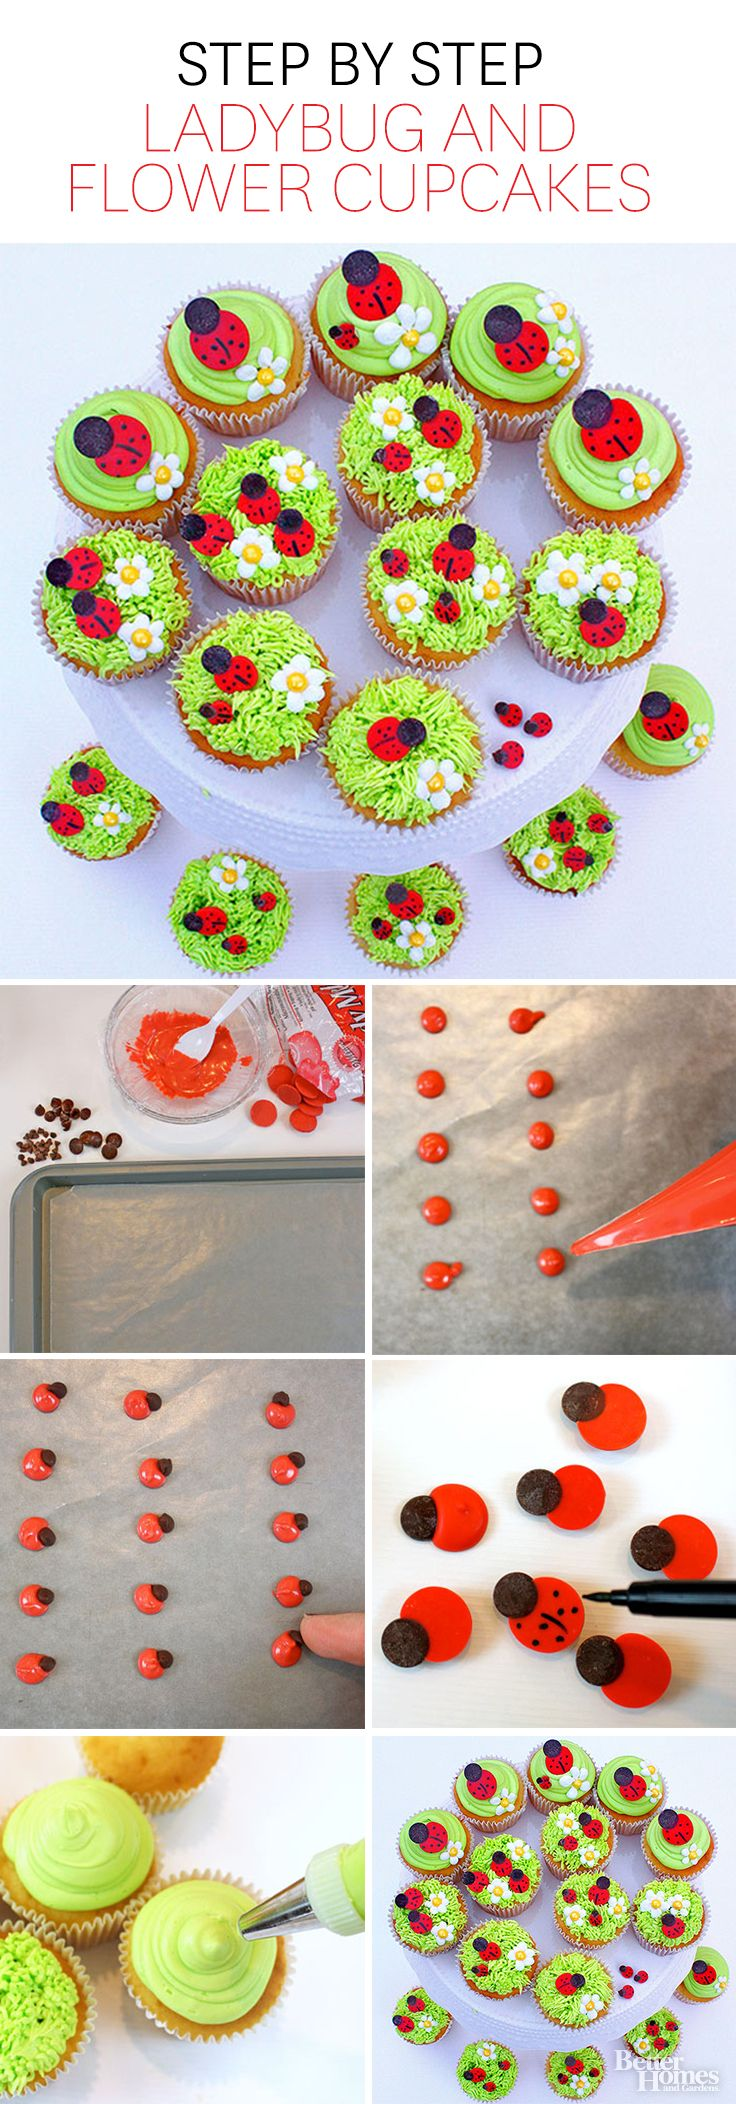 Impress guests at any summertime gathering with these festive Ladybug and Flower Cupcakes: http://www.bhg.com/recipes/desserts/cupcakes/ladybug-and-flower-cupcakes/?socsrc=bhgpin050914ladybugcupcakes